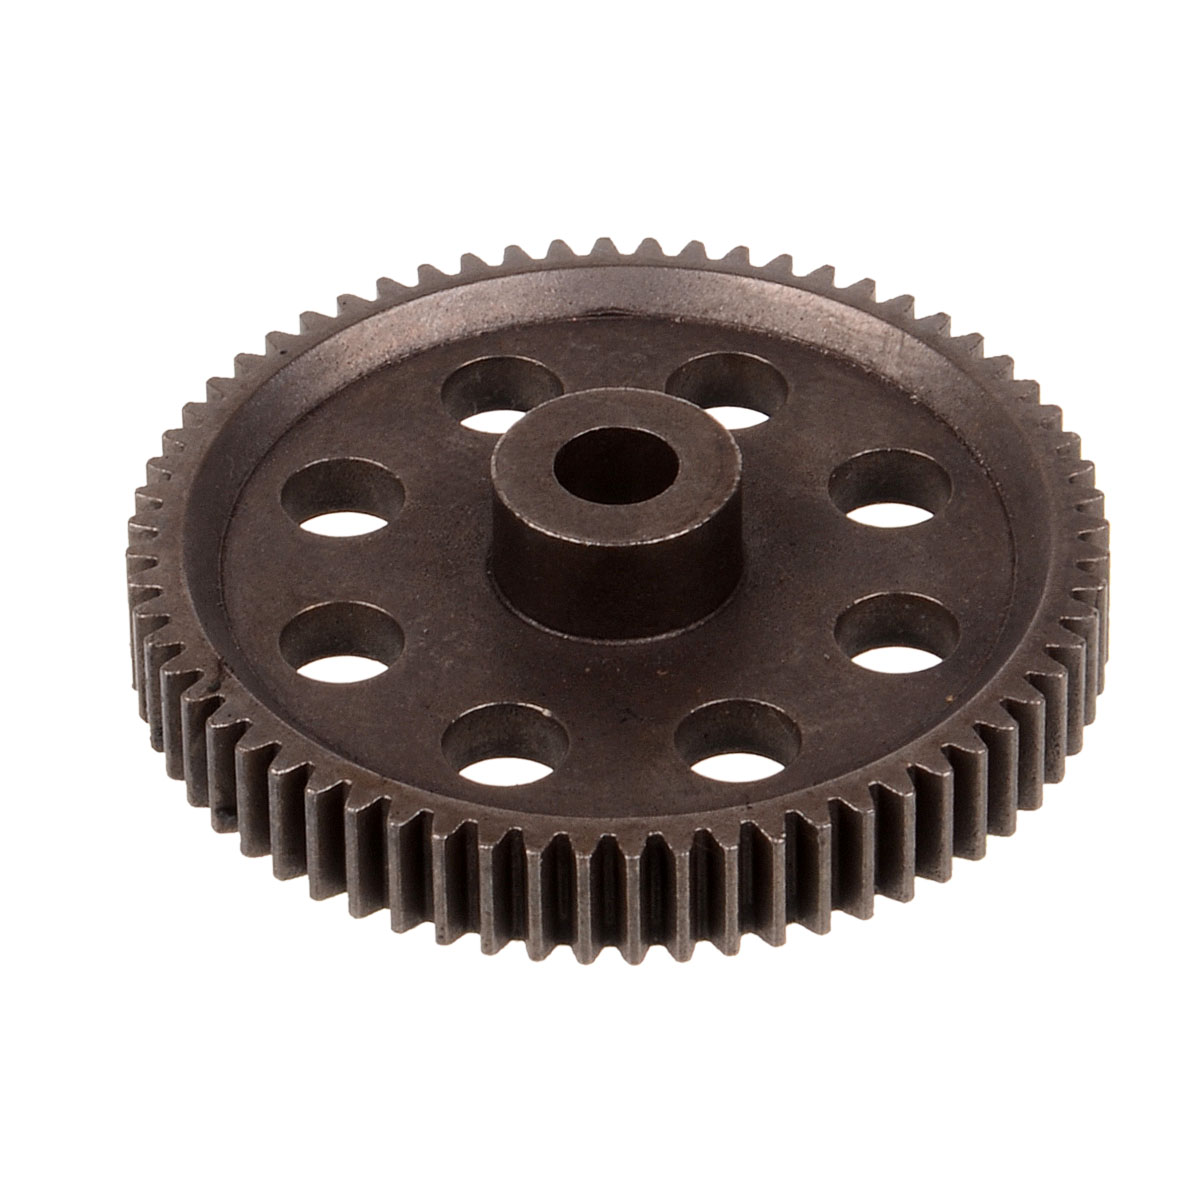 HSP 11184 Diff.Main Gear (64T) Spart Parts For 1/10 R/C Model Car